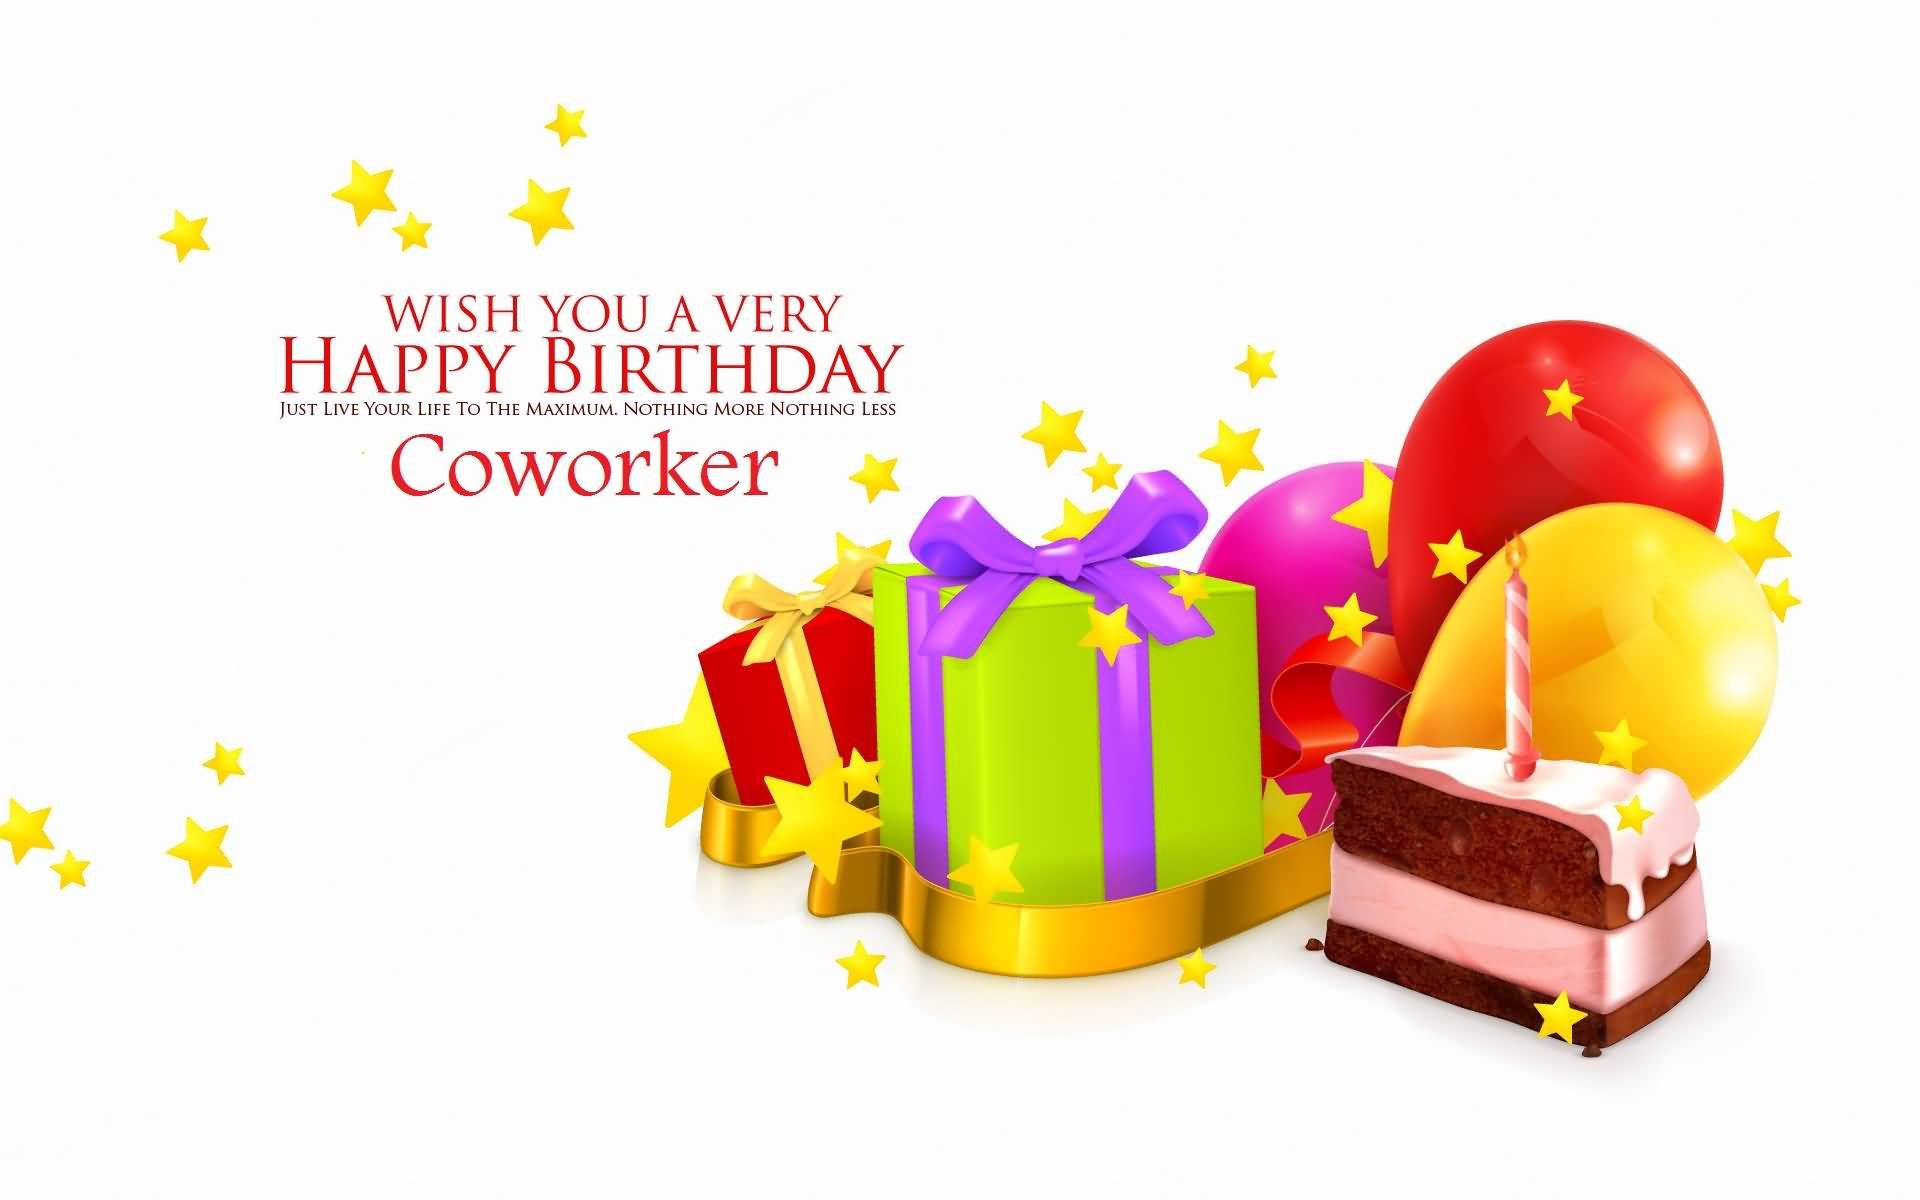 Happy Birthday Wishes To A Coworker  42 Nice Coworker Birthday Wishes Greetings & s